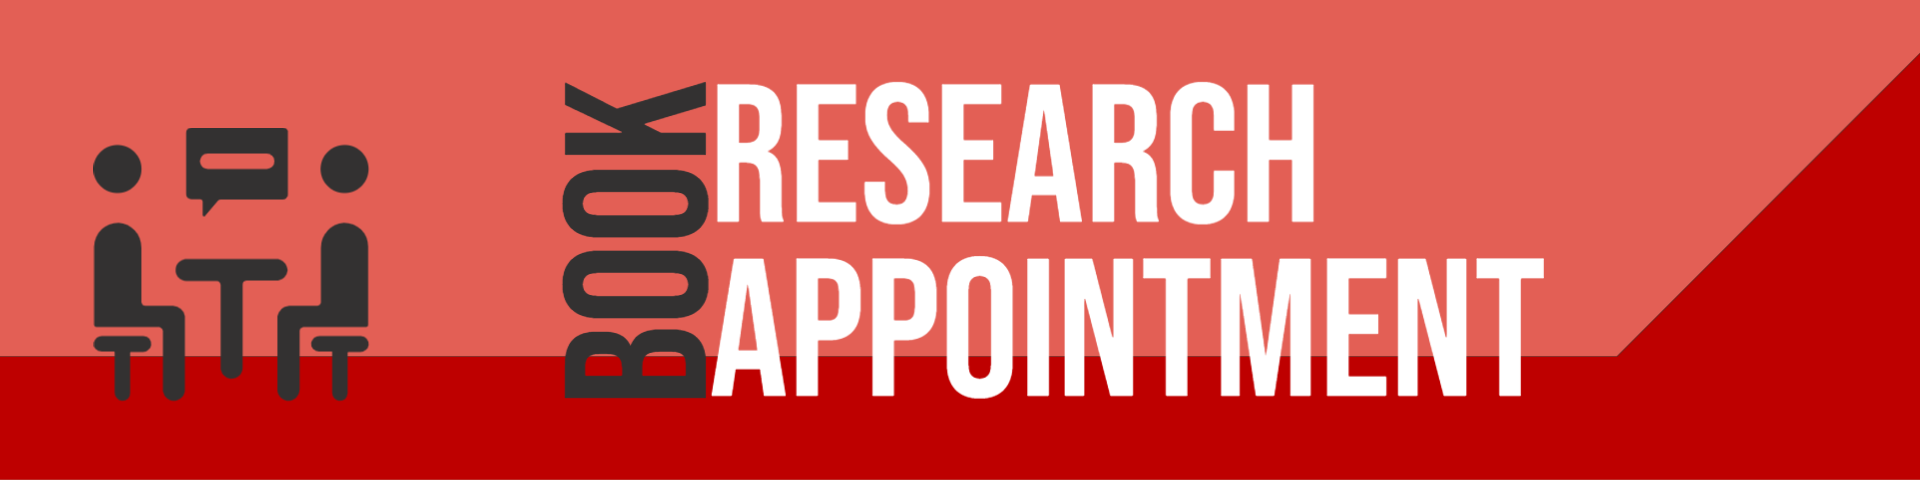 book a research appointment